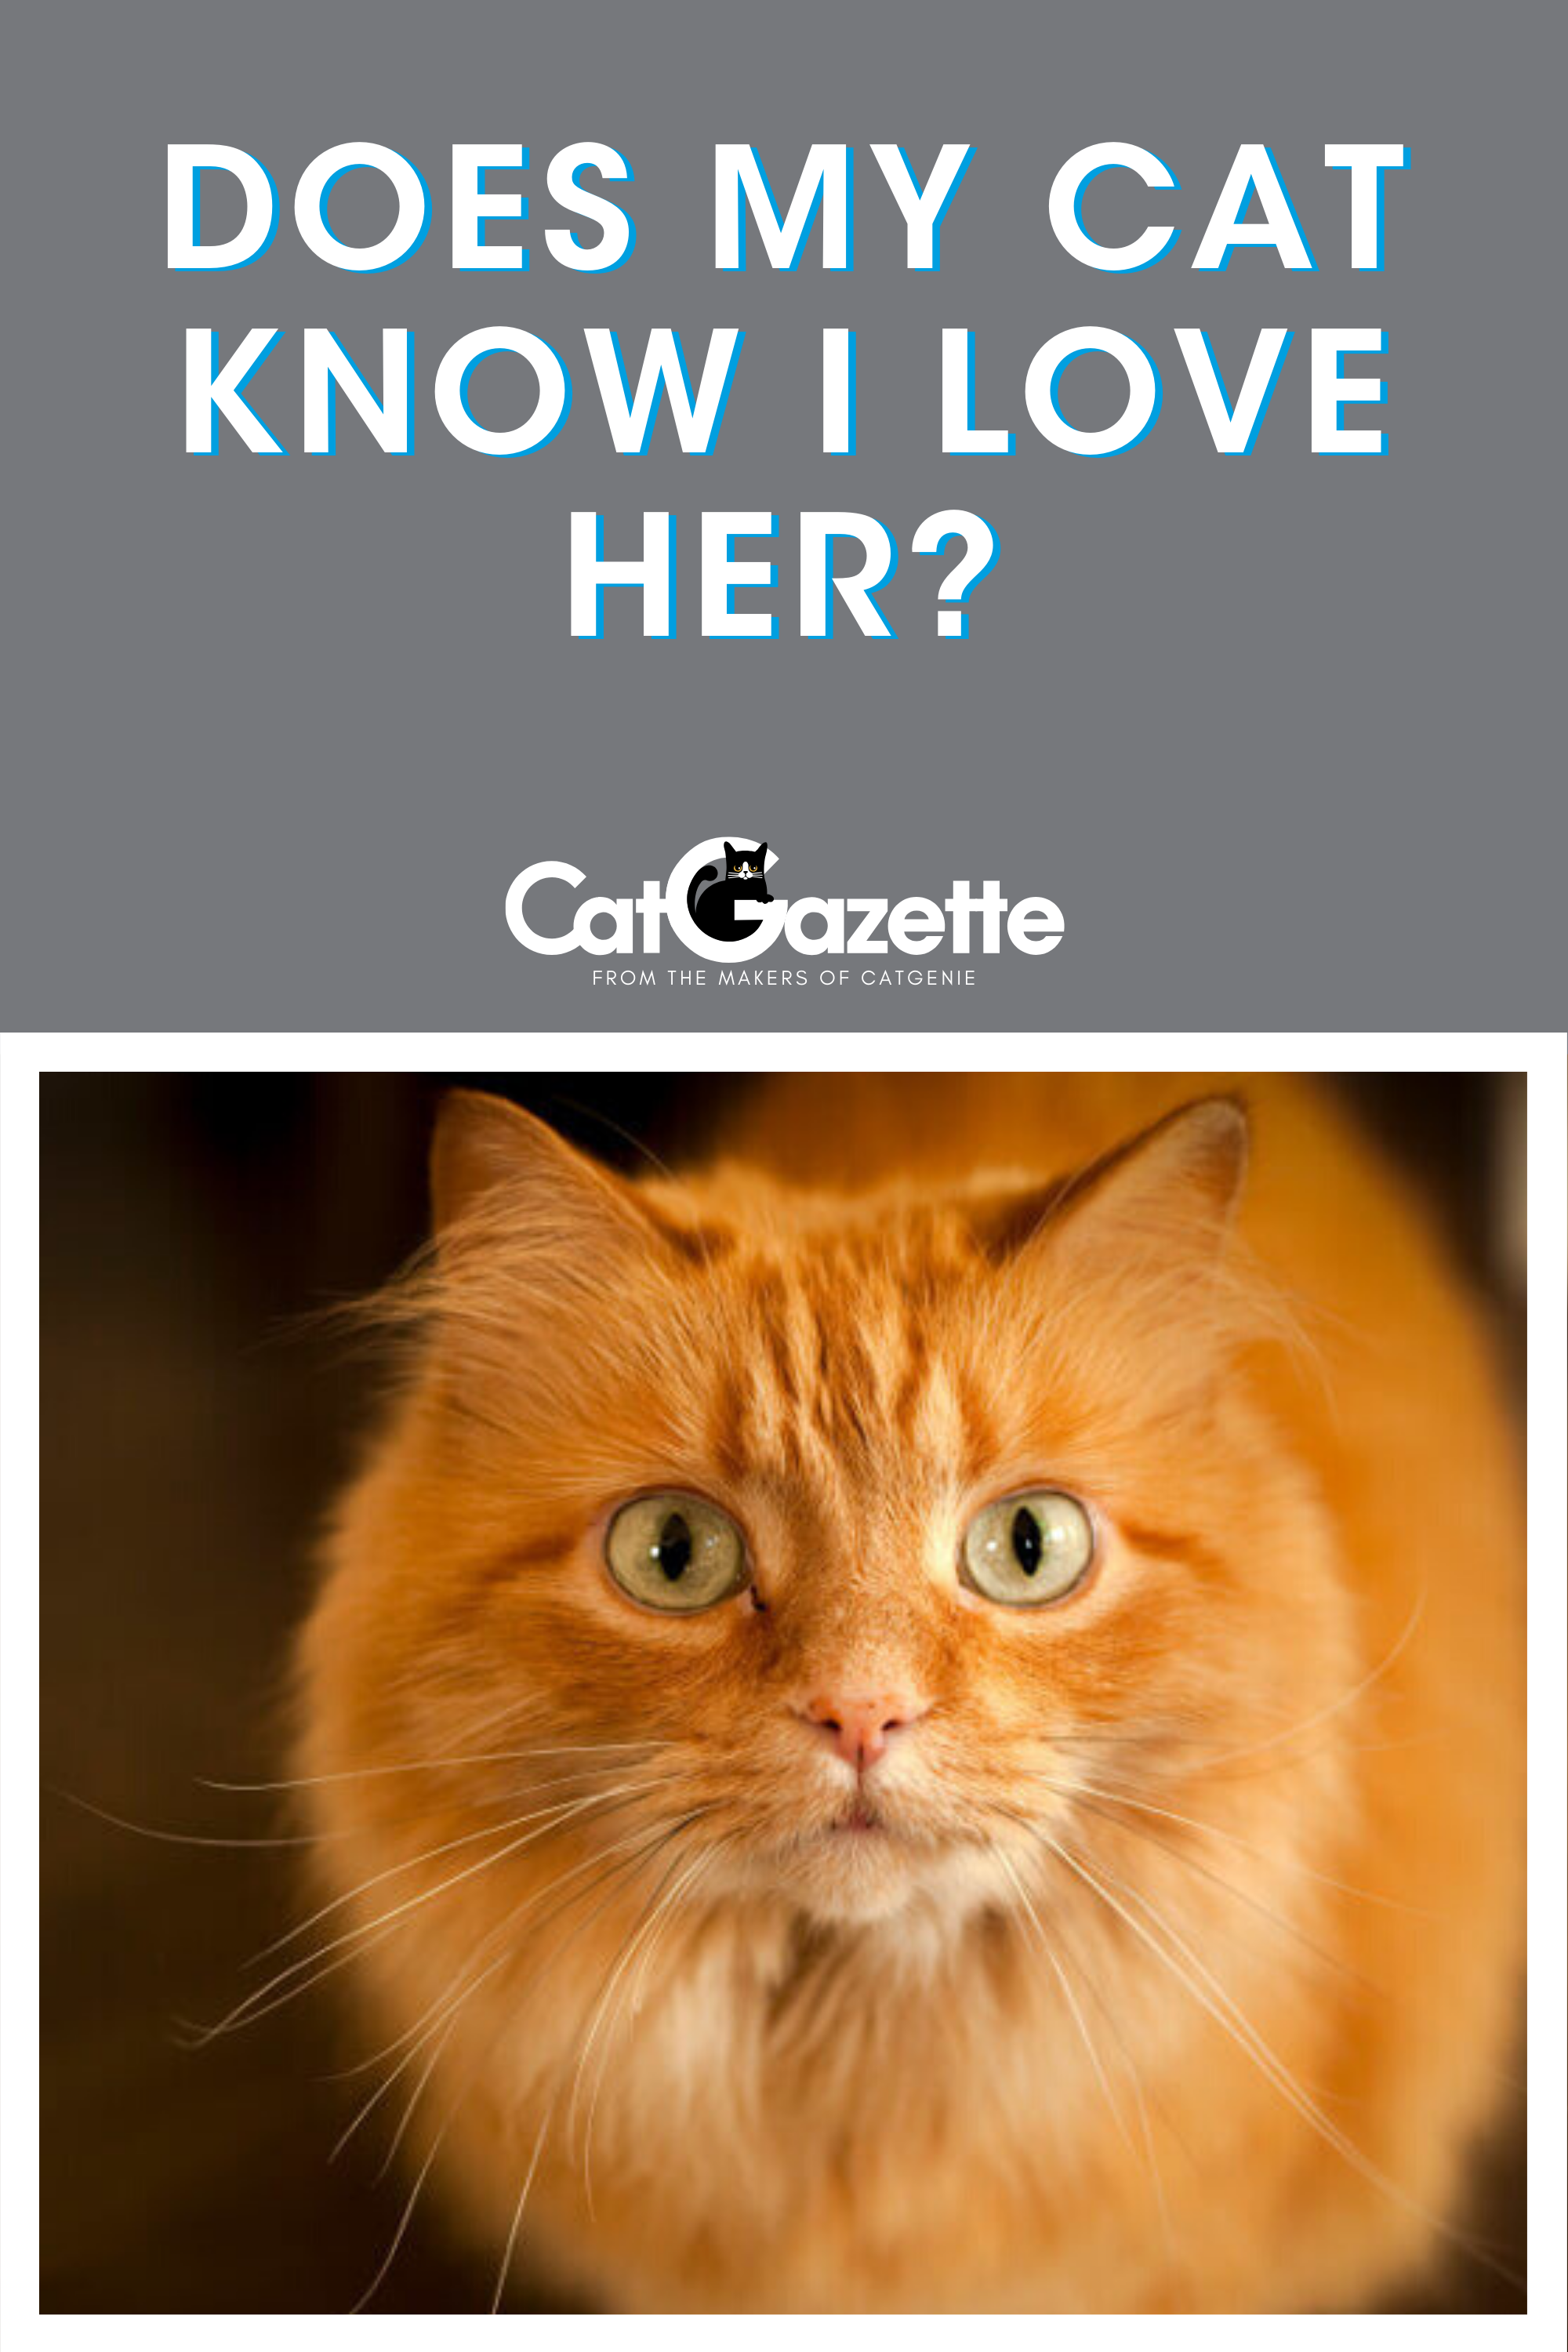 10 Signs Your Cat Truly Loves You Cats Cat Catsofinstagram Of Catstagram Beautifulcats Cats Beautiful Cats Kitten Lover